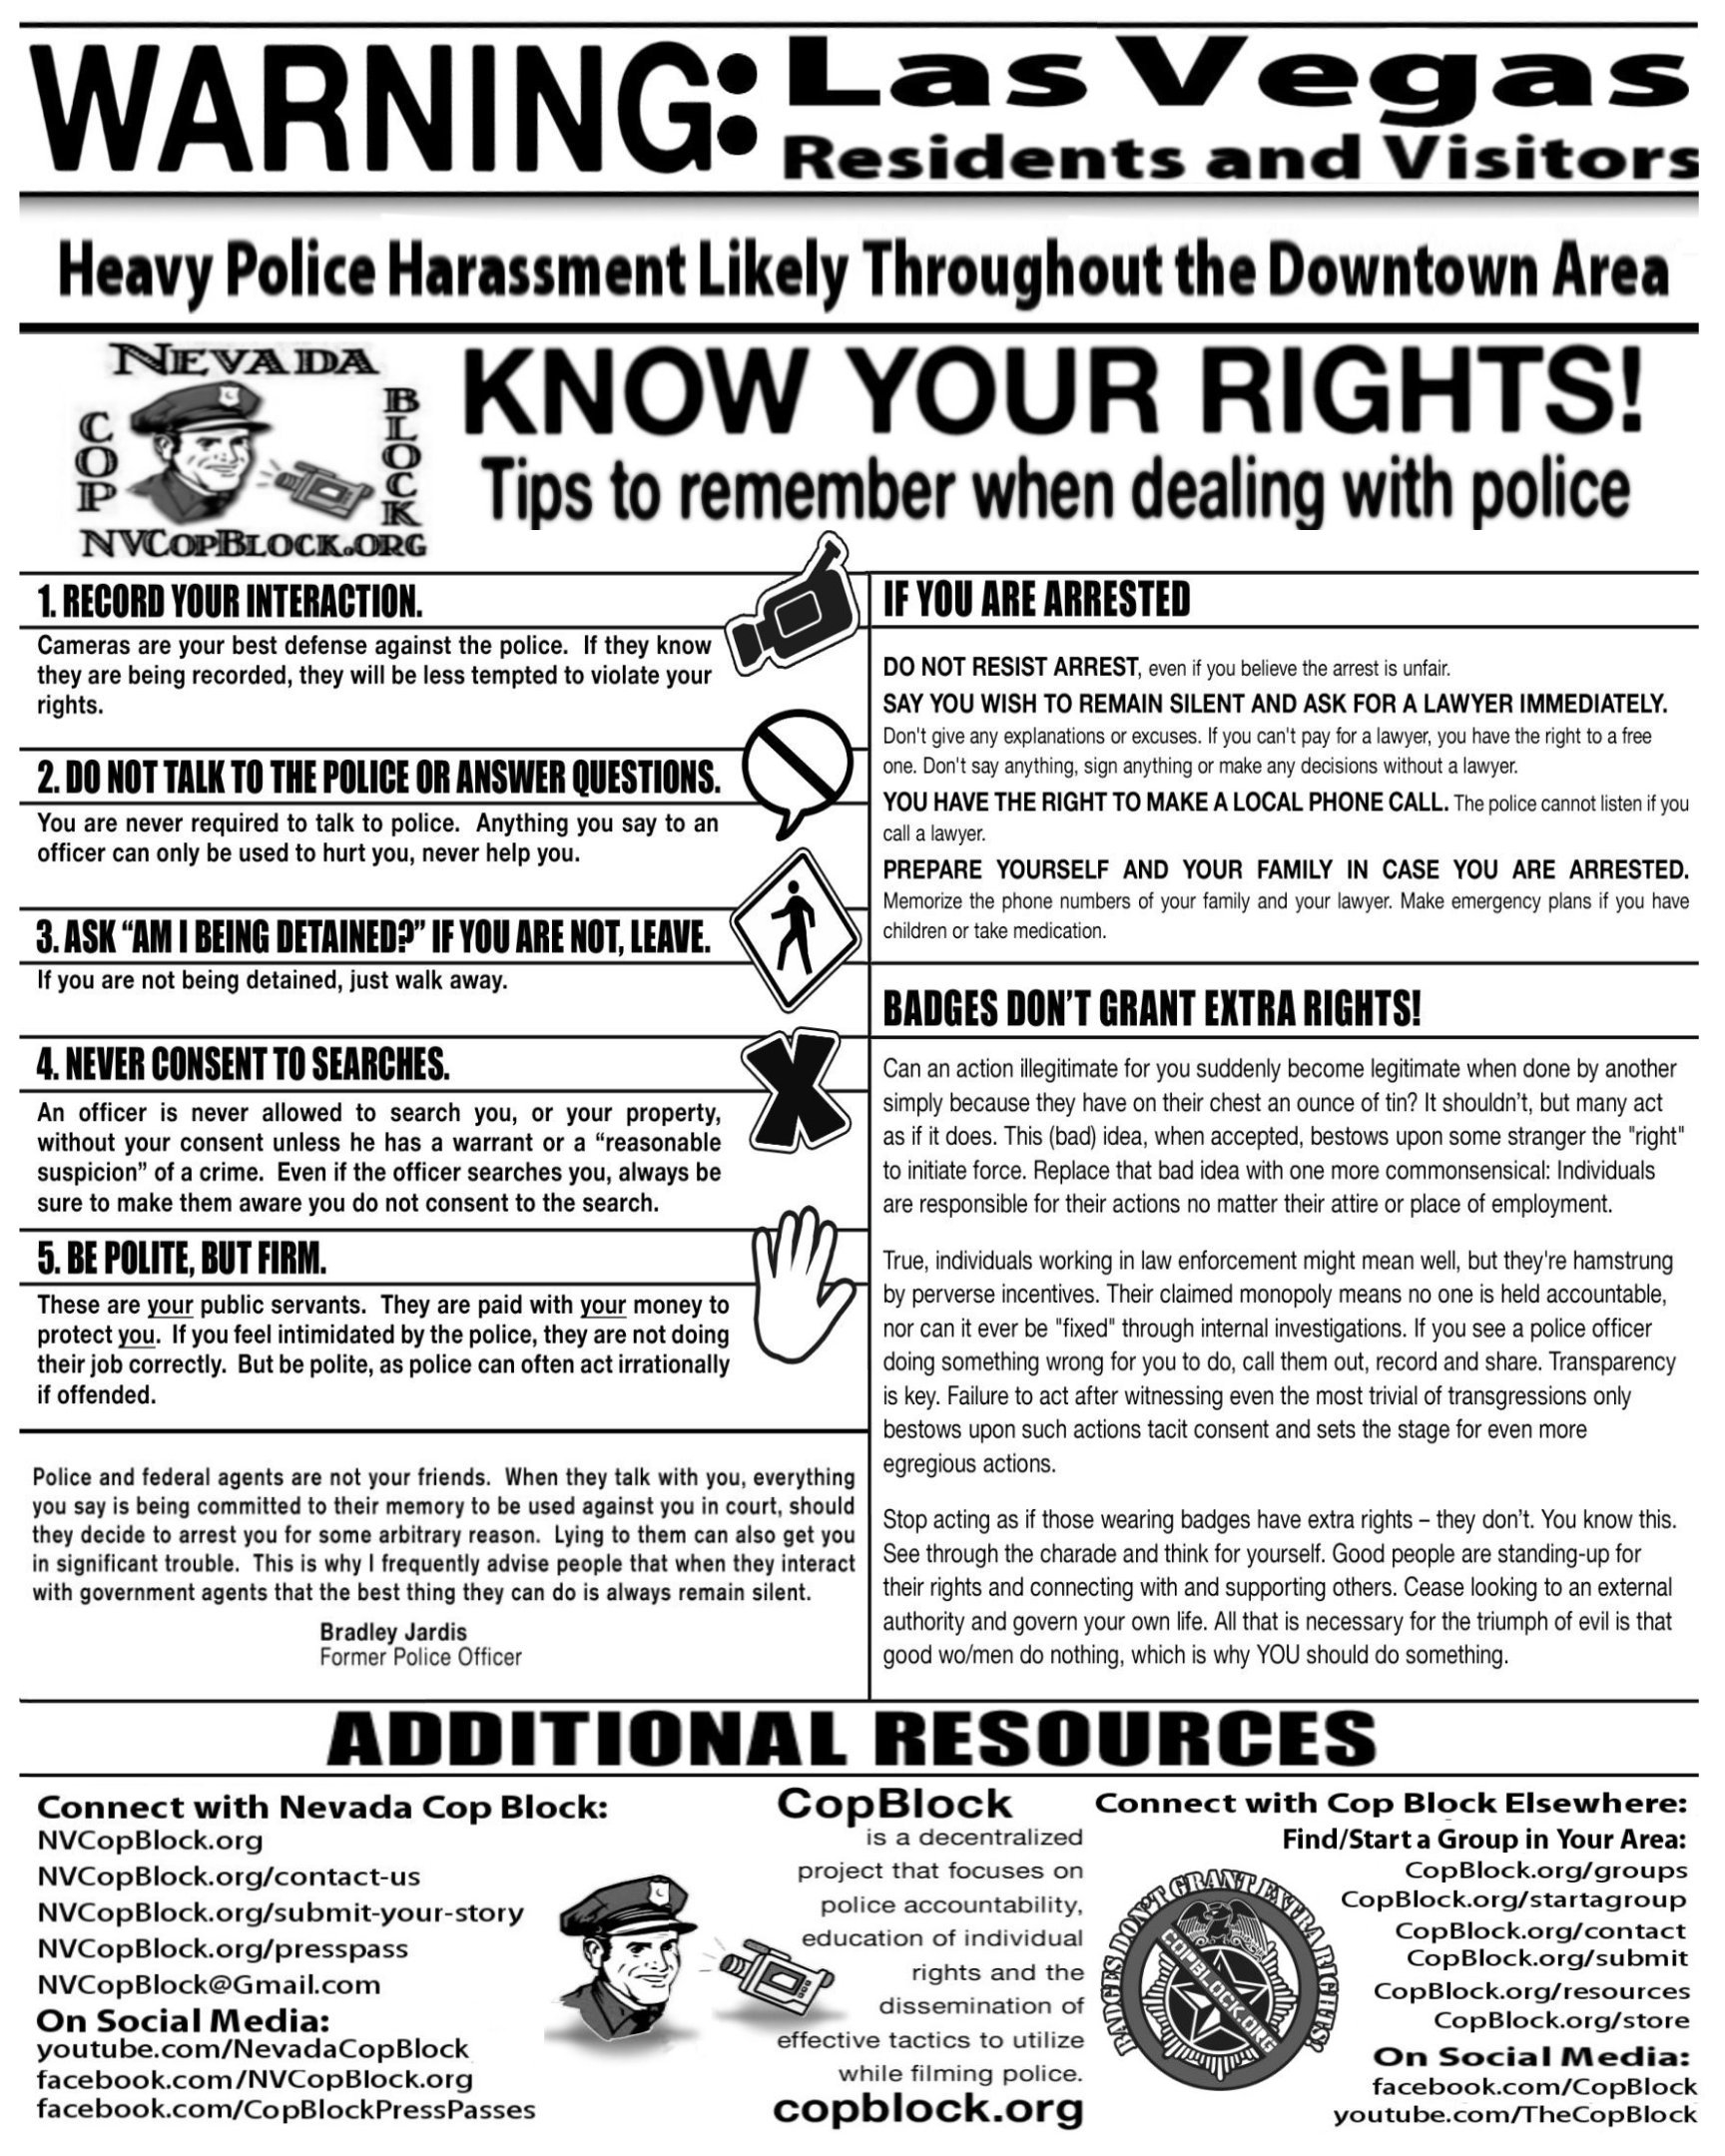 Know Your Rights And How To Protect Them When Dealing With Police